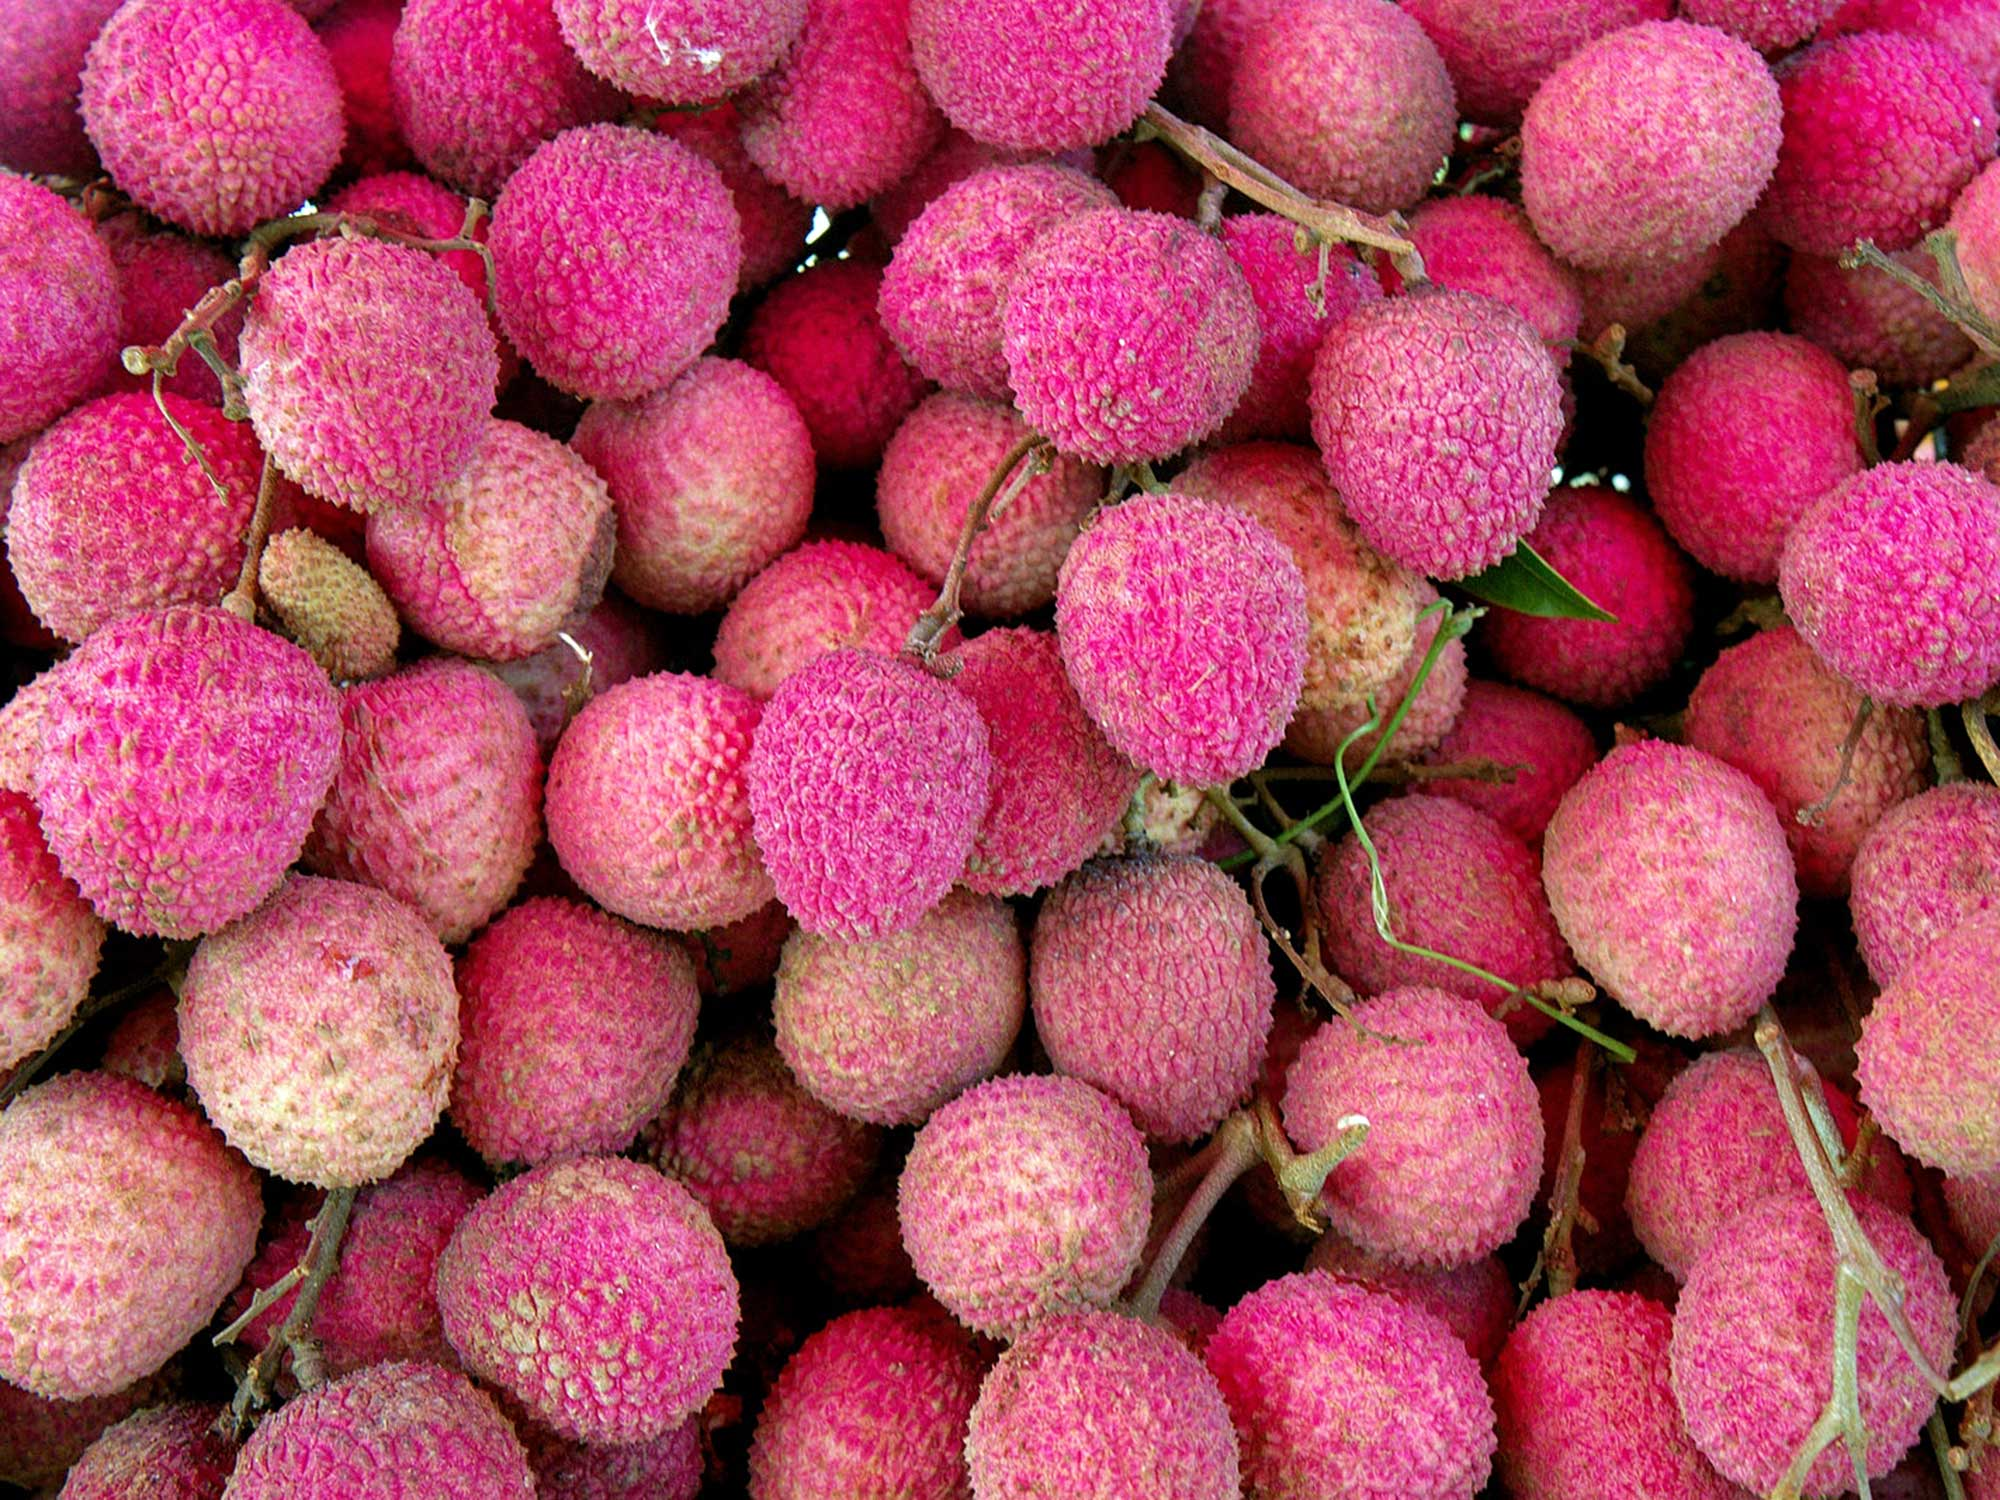 How a Popular Tropical Fruit Caused India's Deadly Summer Illness